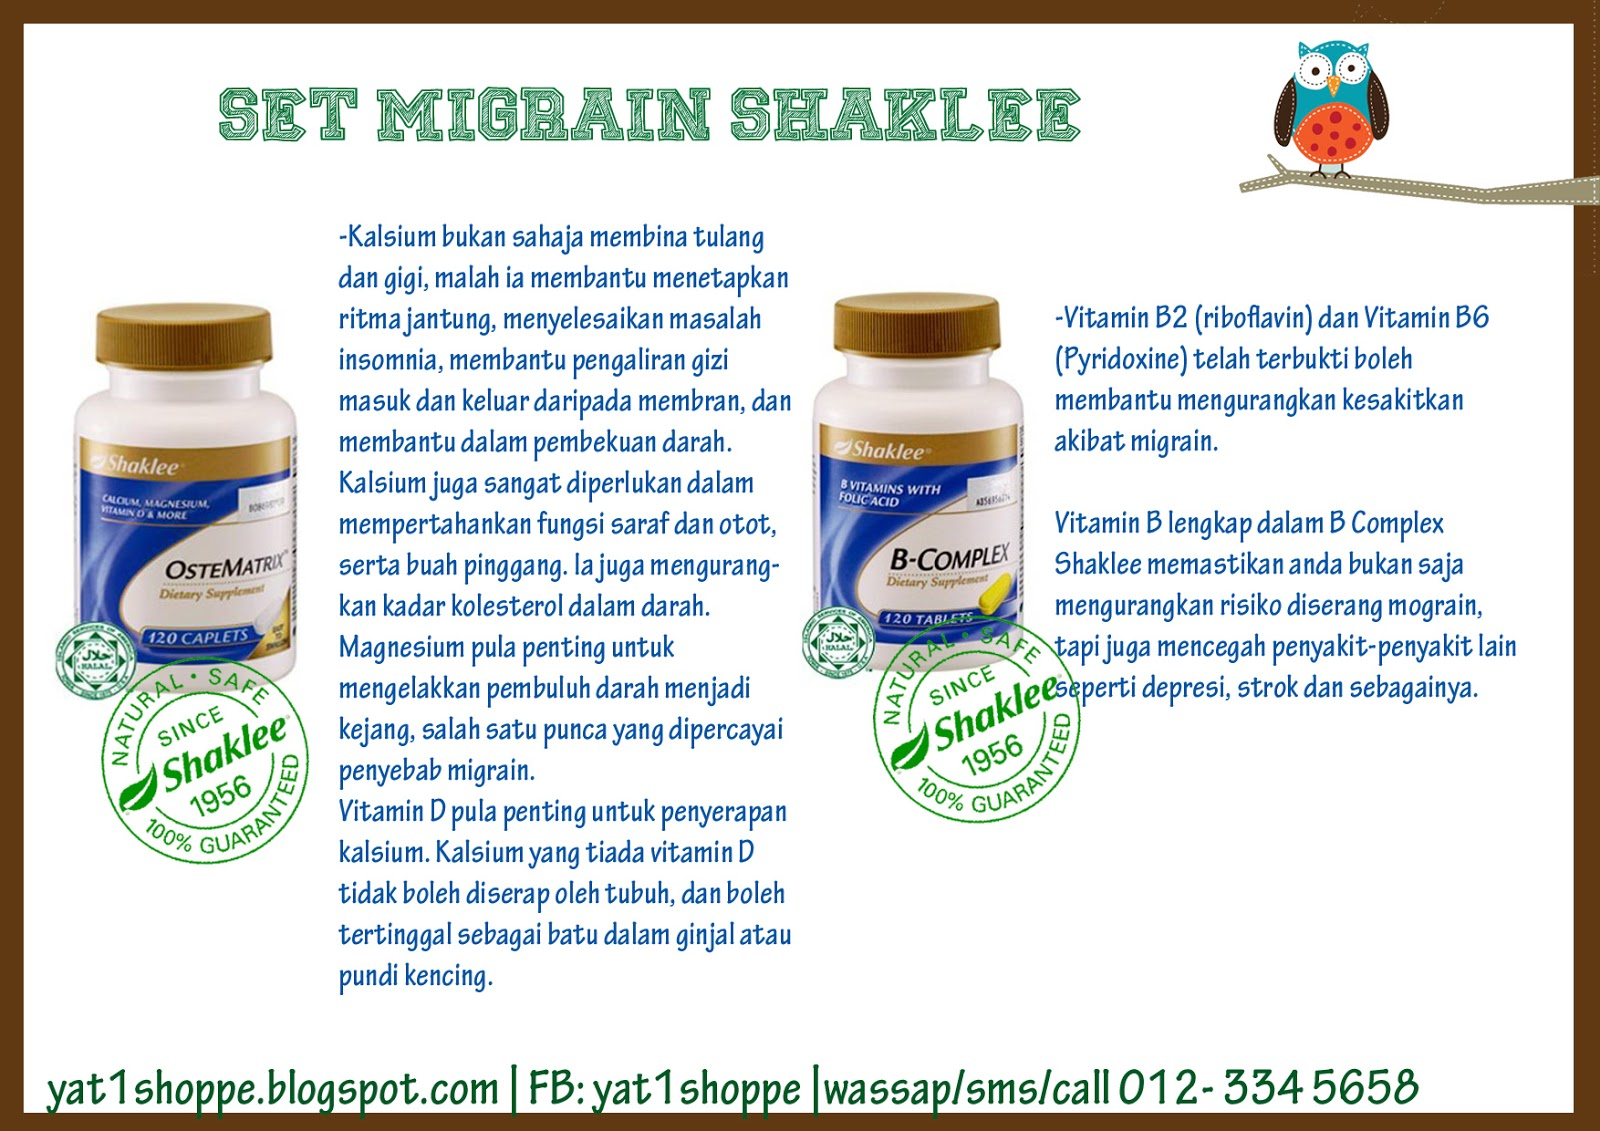 Kafein Haid Your 1 Stop Beauty And Health Care Center Set Migrain Shaklee